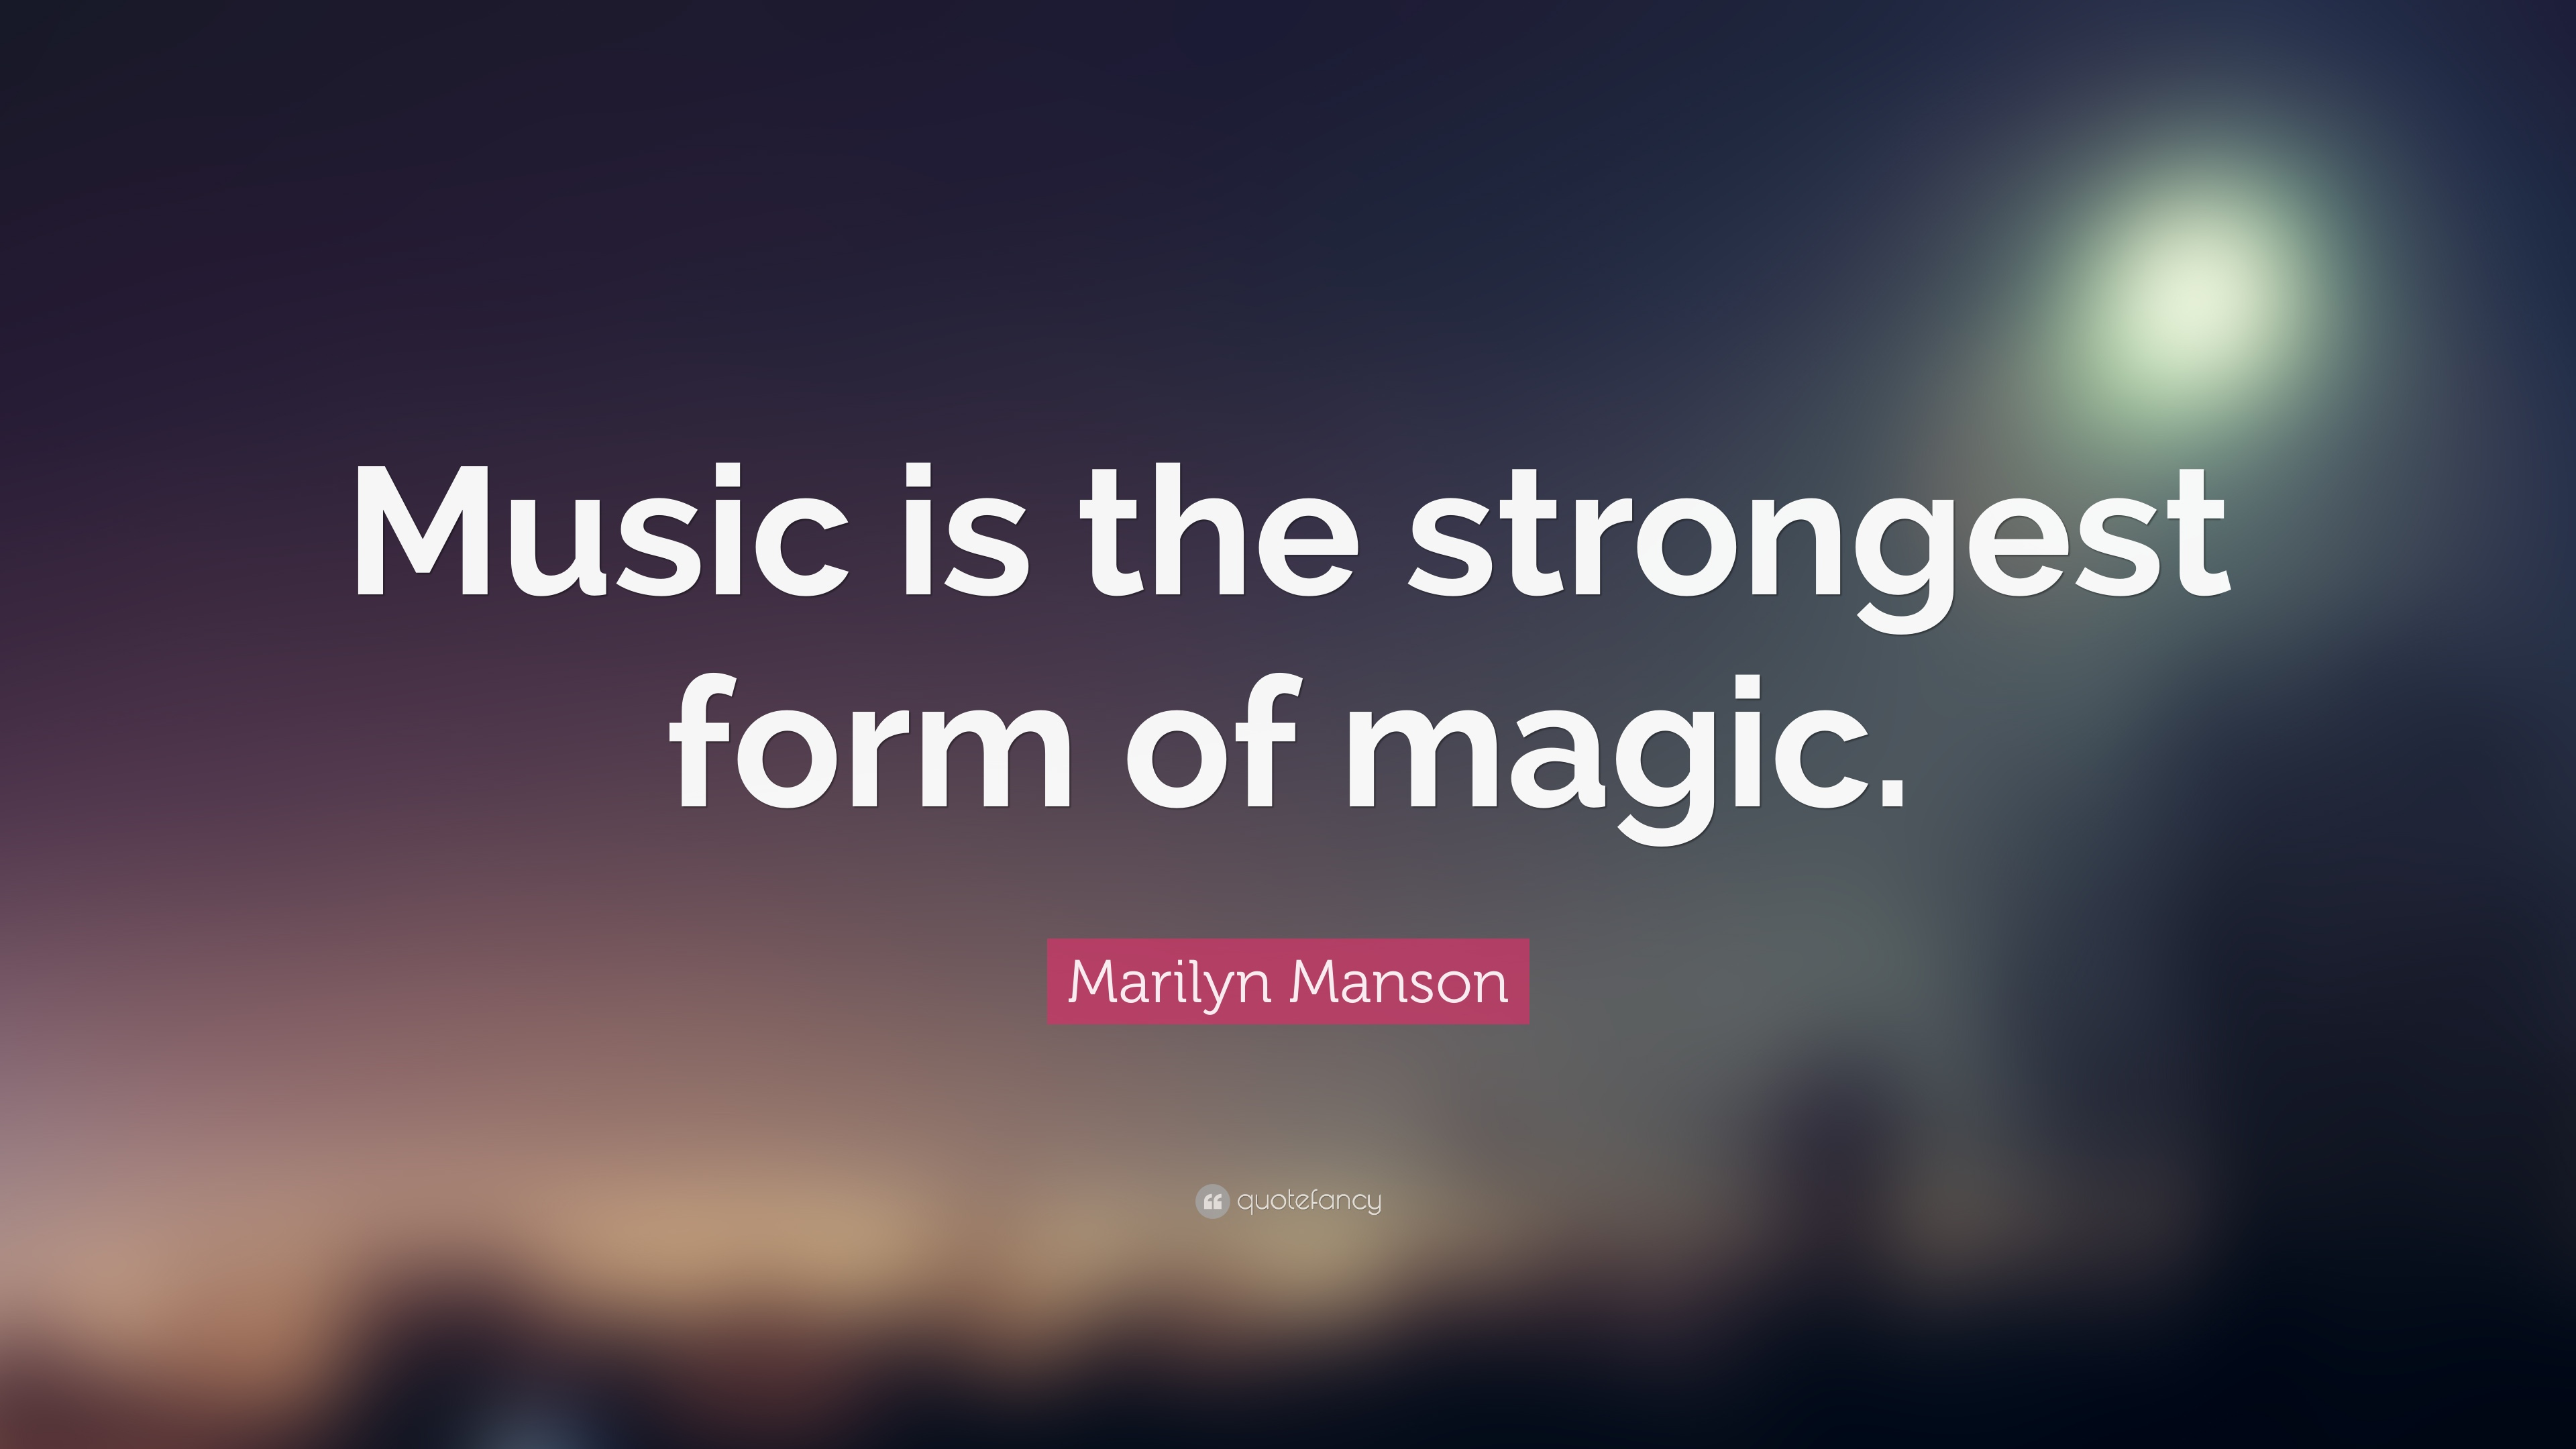 Cute Wallpapers To Say I Love You Marilyn Manson Quote Music Is The Strongest Form Of